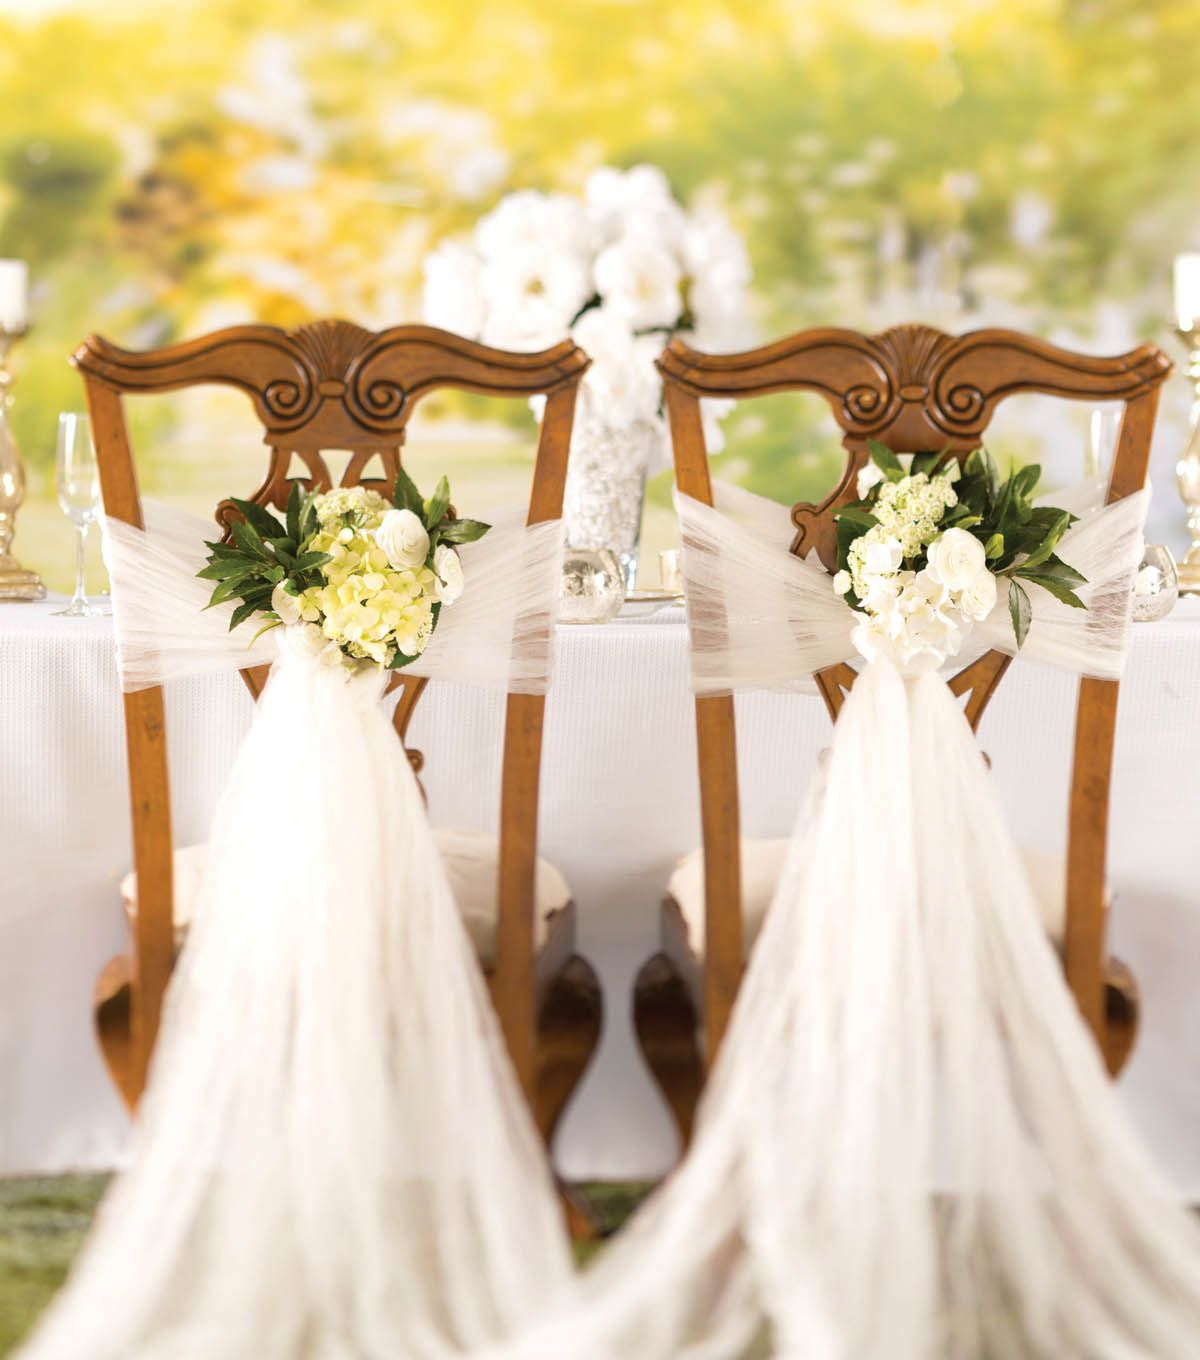 decorating chairs for wedding how to make a crushed tulle chair d 233 cor diy wedding 3363